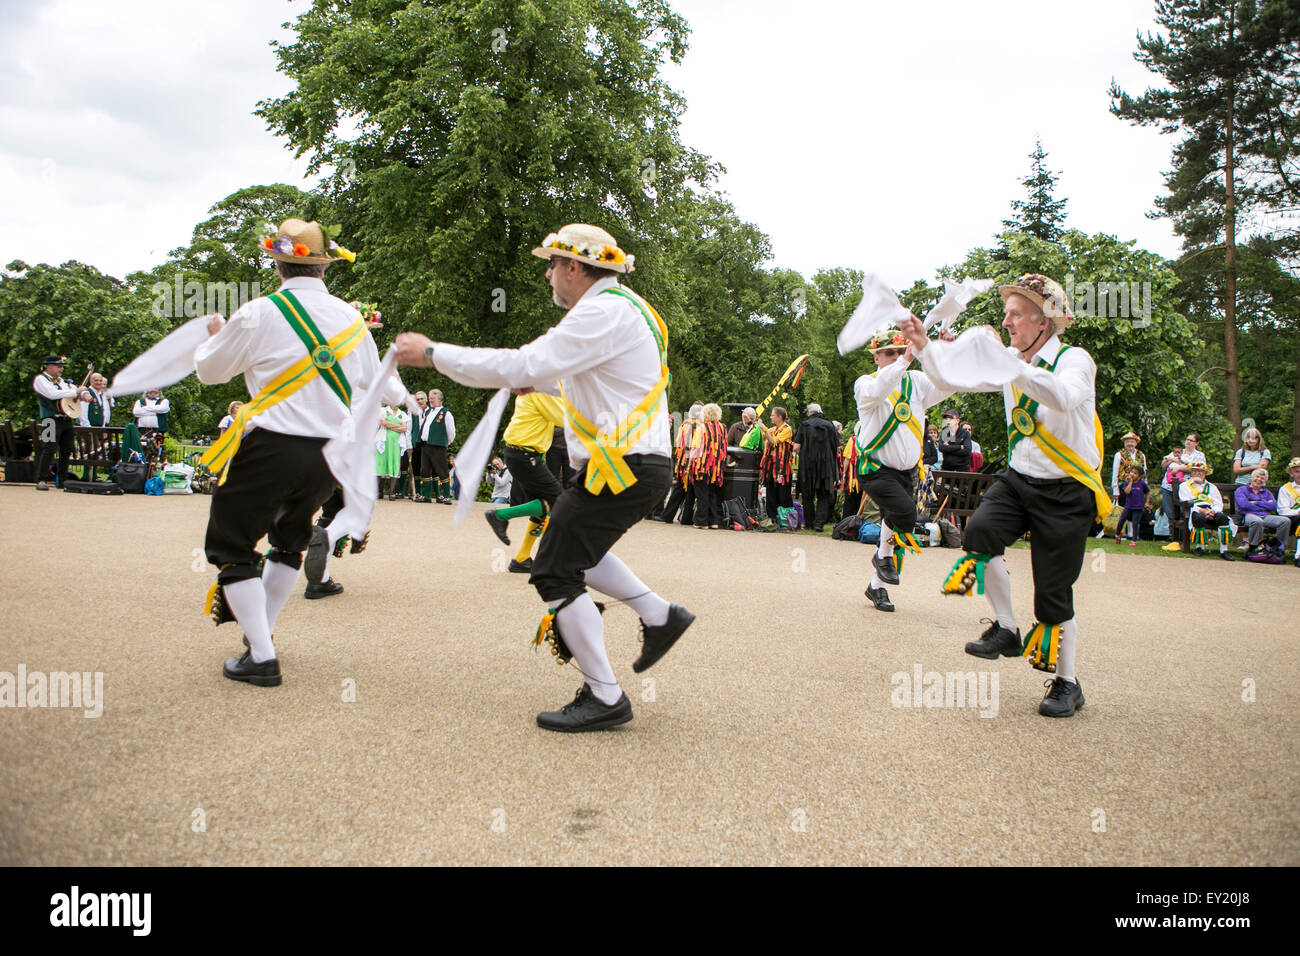 Buxton Day of Dance hosted by Chapel-en-le-Frith Morris Men. A feast of traditional dancing from around the country. - Stock Image